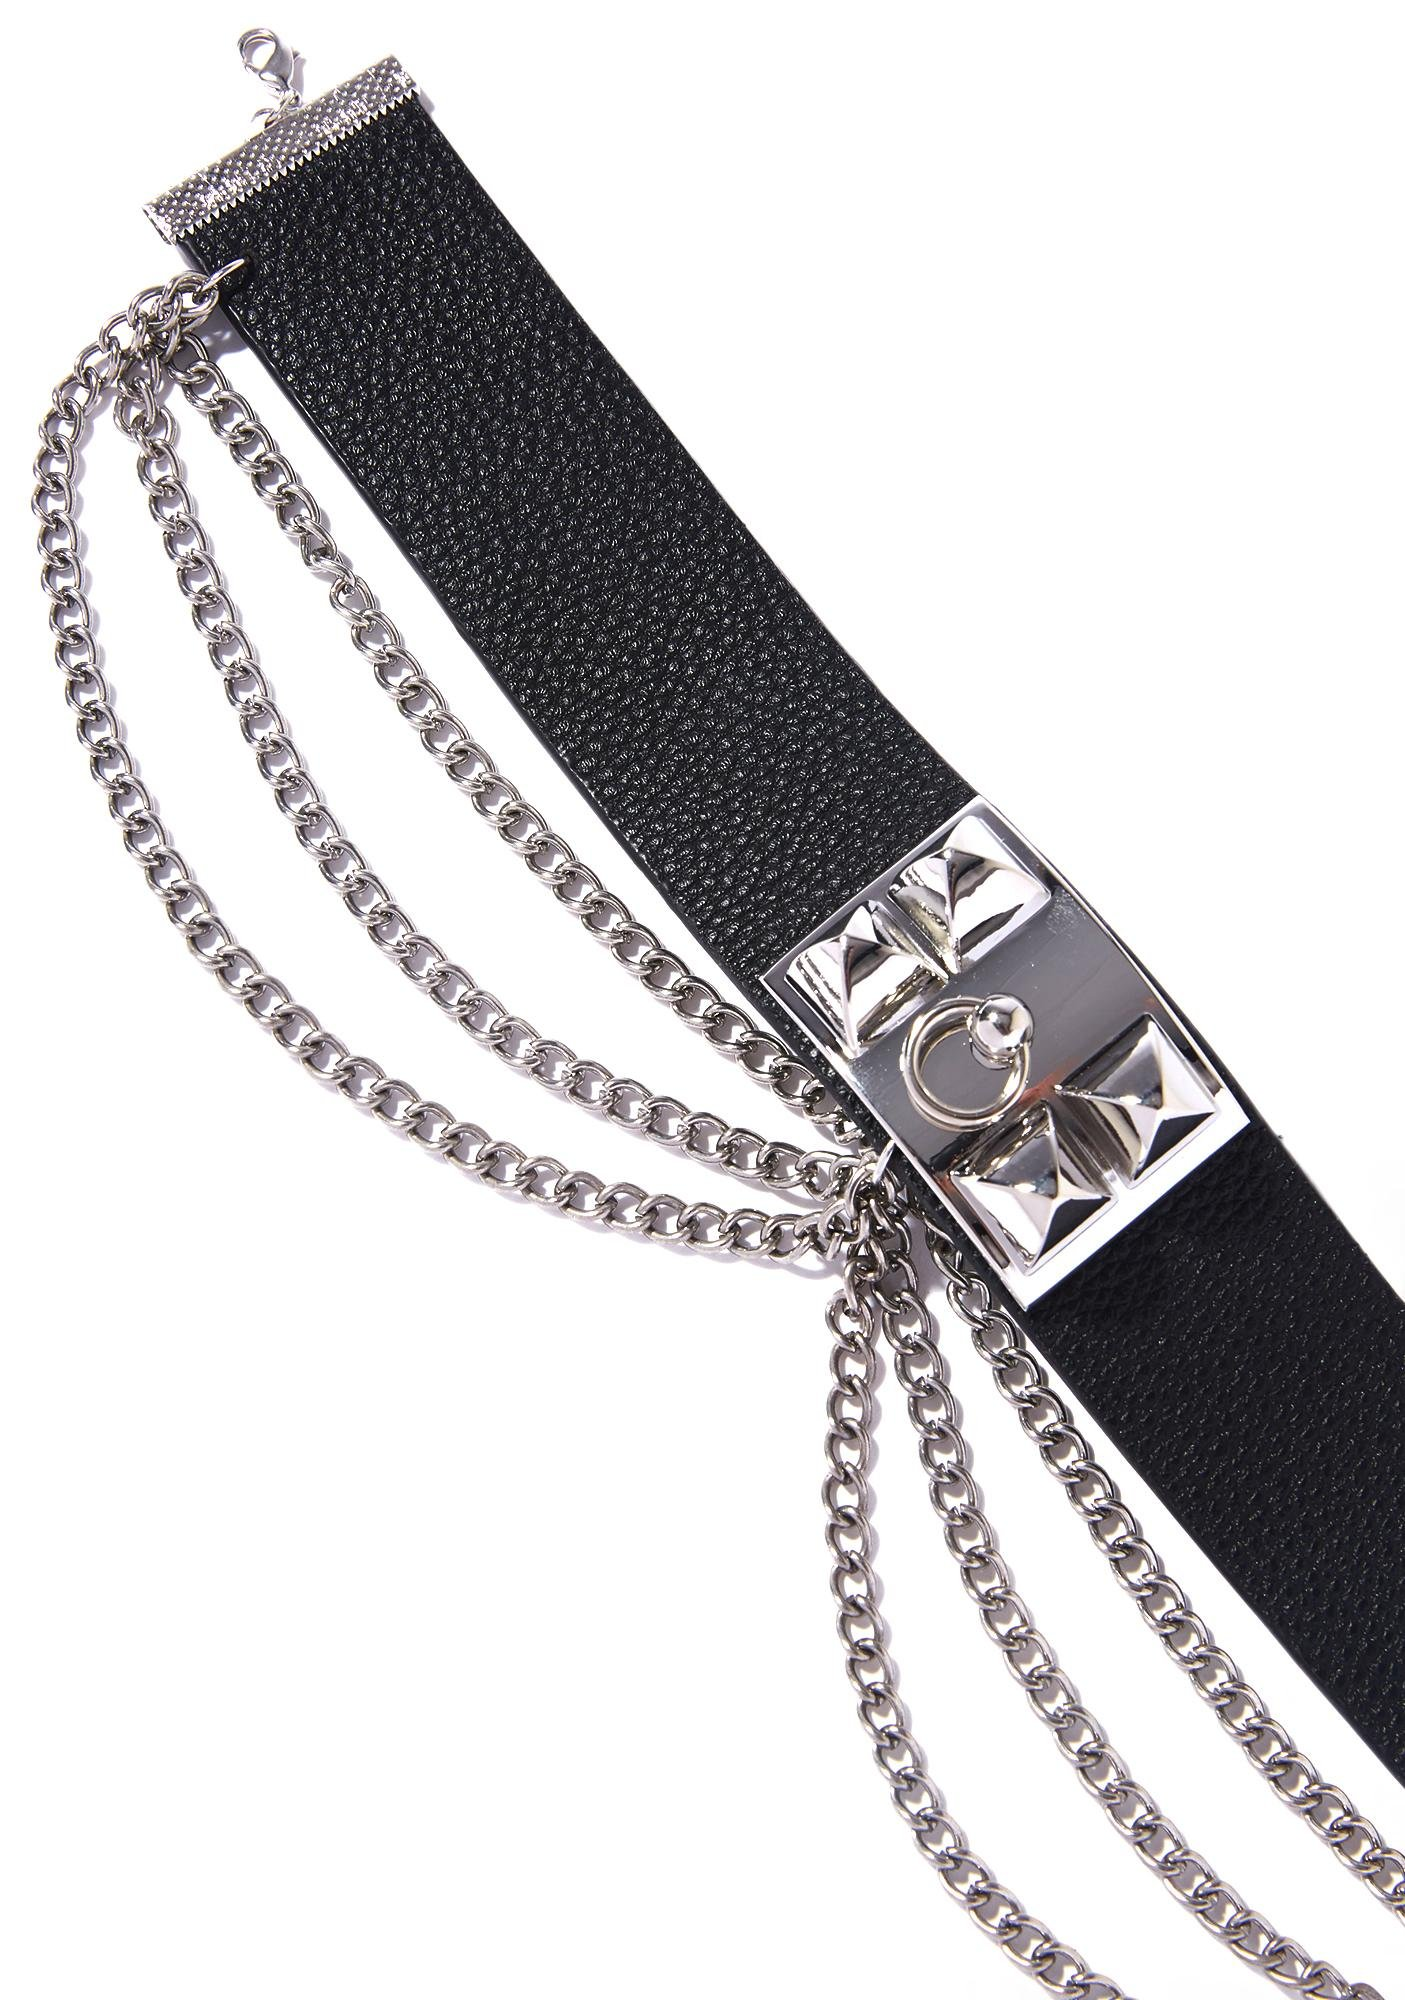 Hells Angels Leather Choker